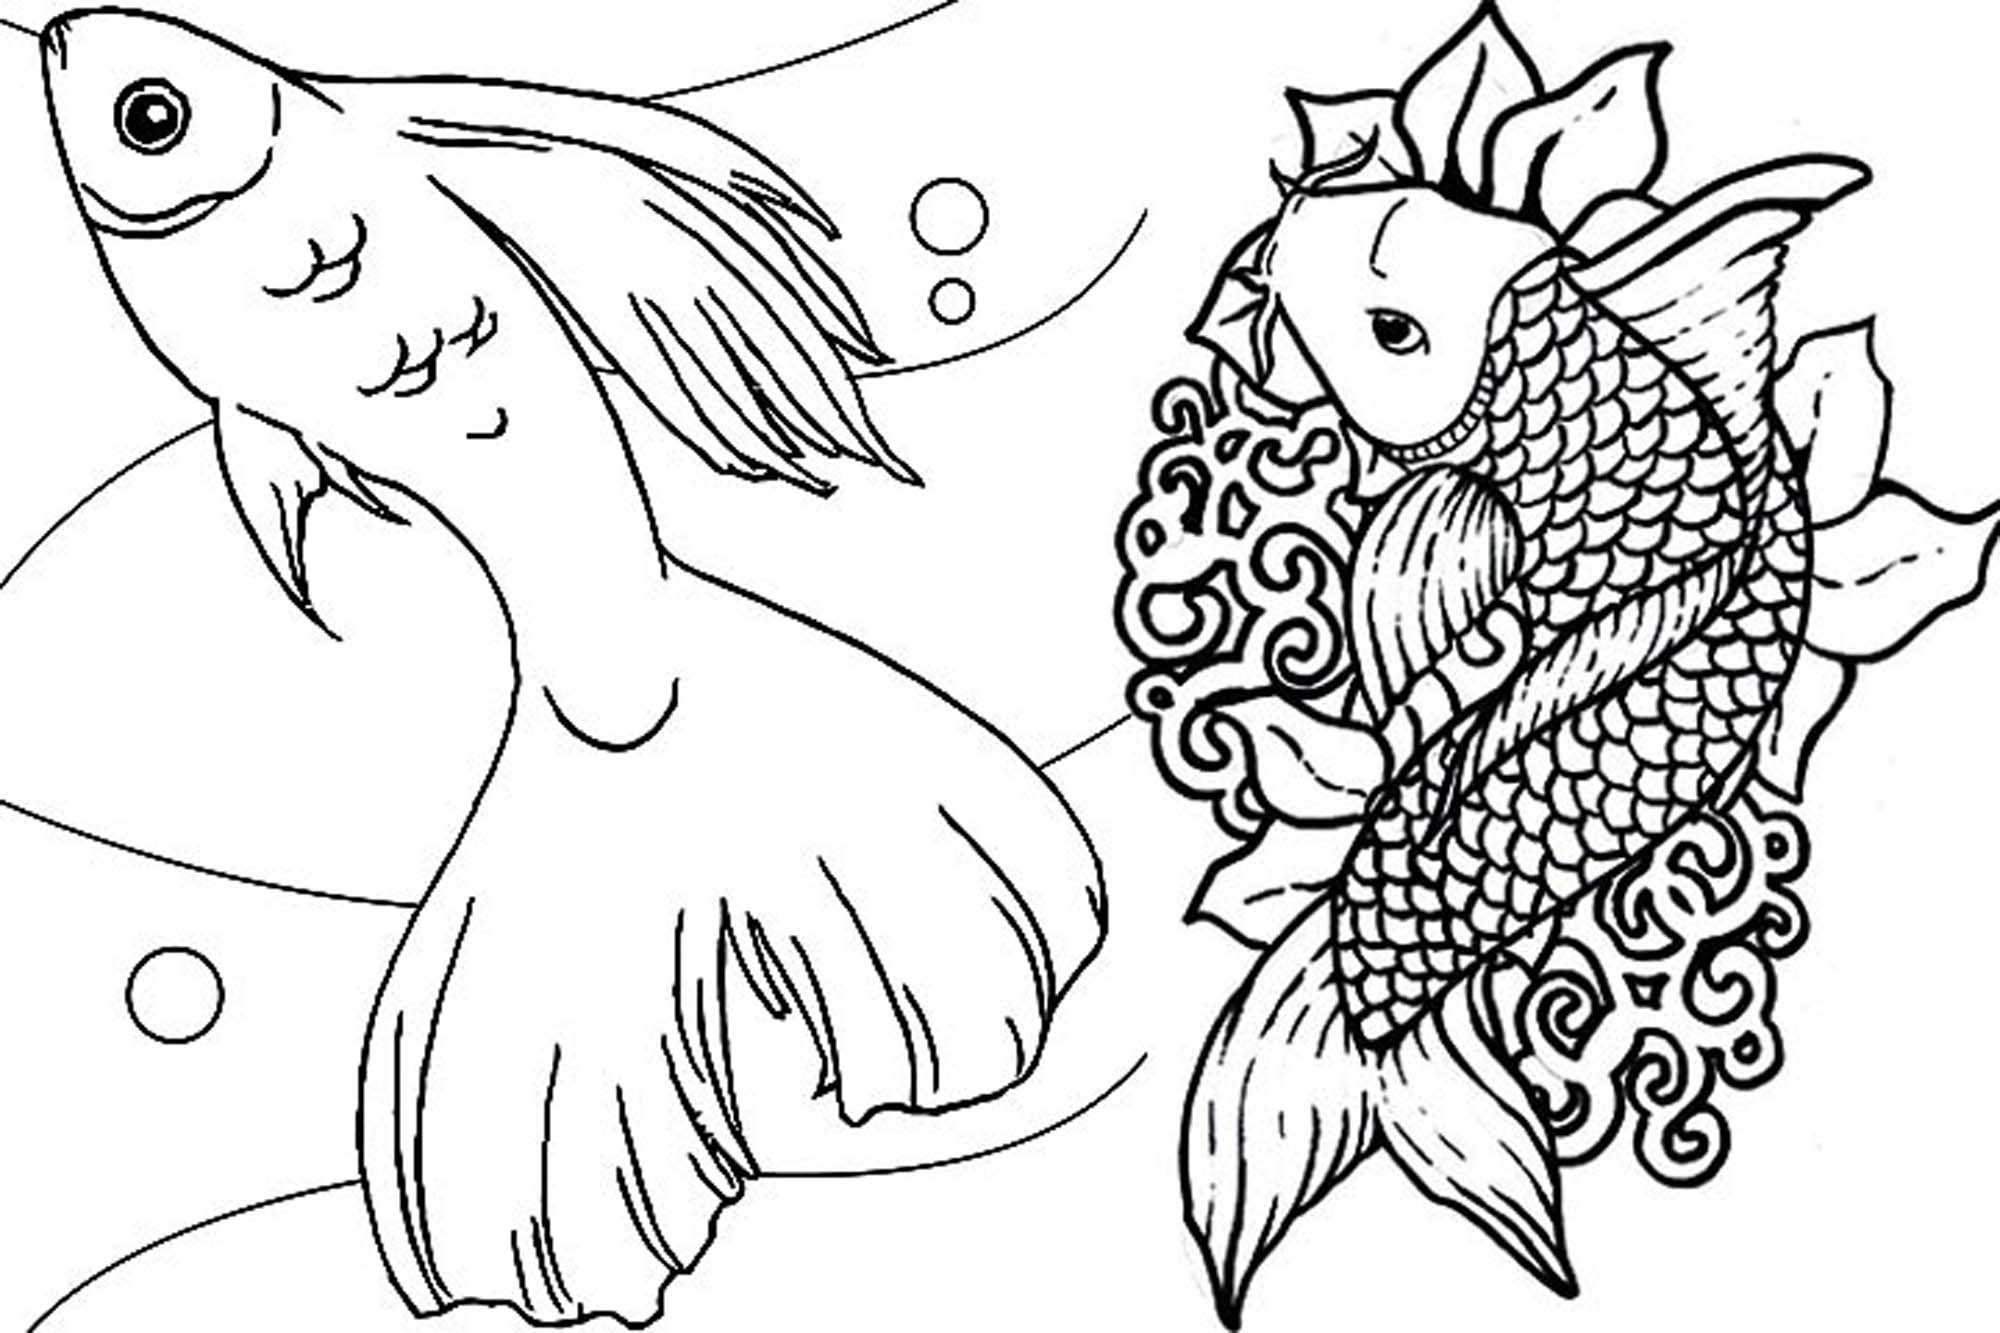 fish color 8 fish coloring pages jpg ai illustrator free color fish